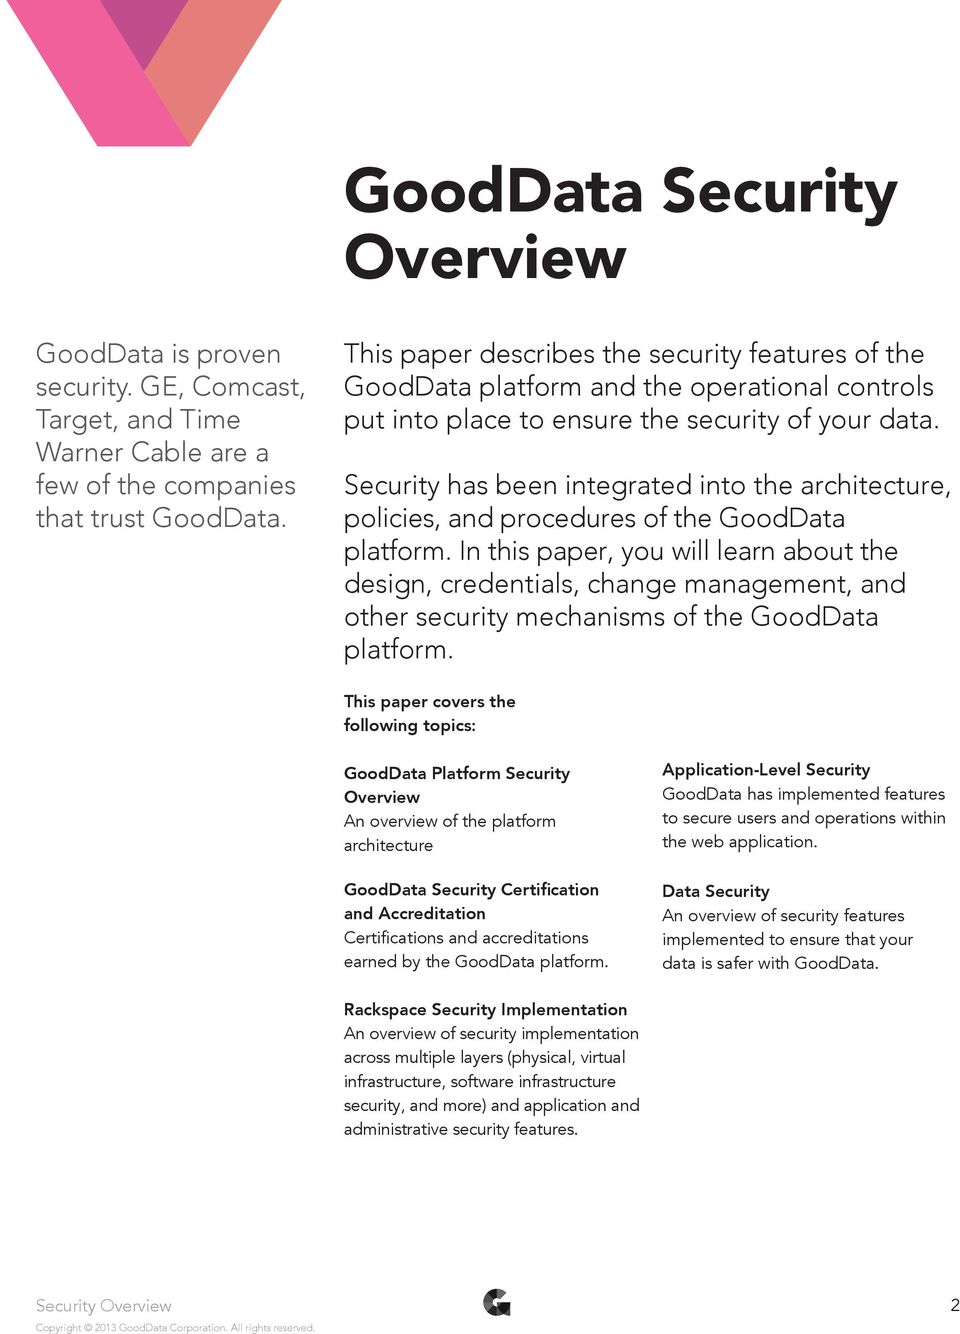 Security has been integrated into the architecture, policies, and procedures of the GoodData platform.